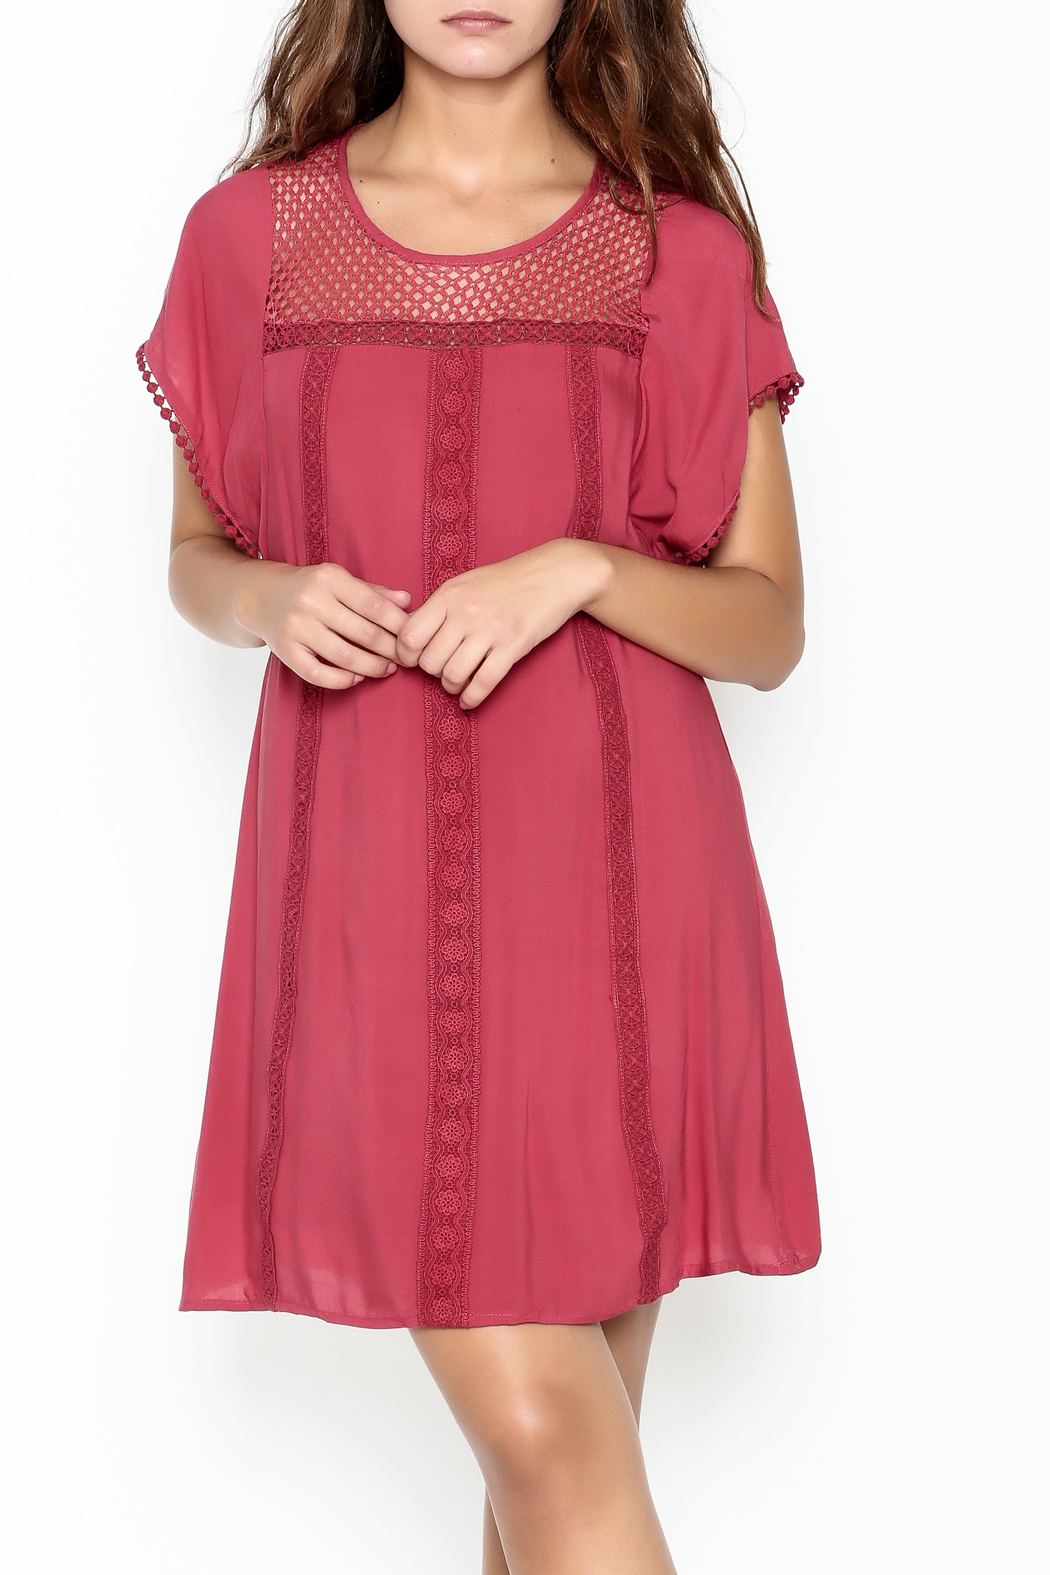 She + Sky Red Lace Tunic - Main Image